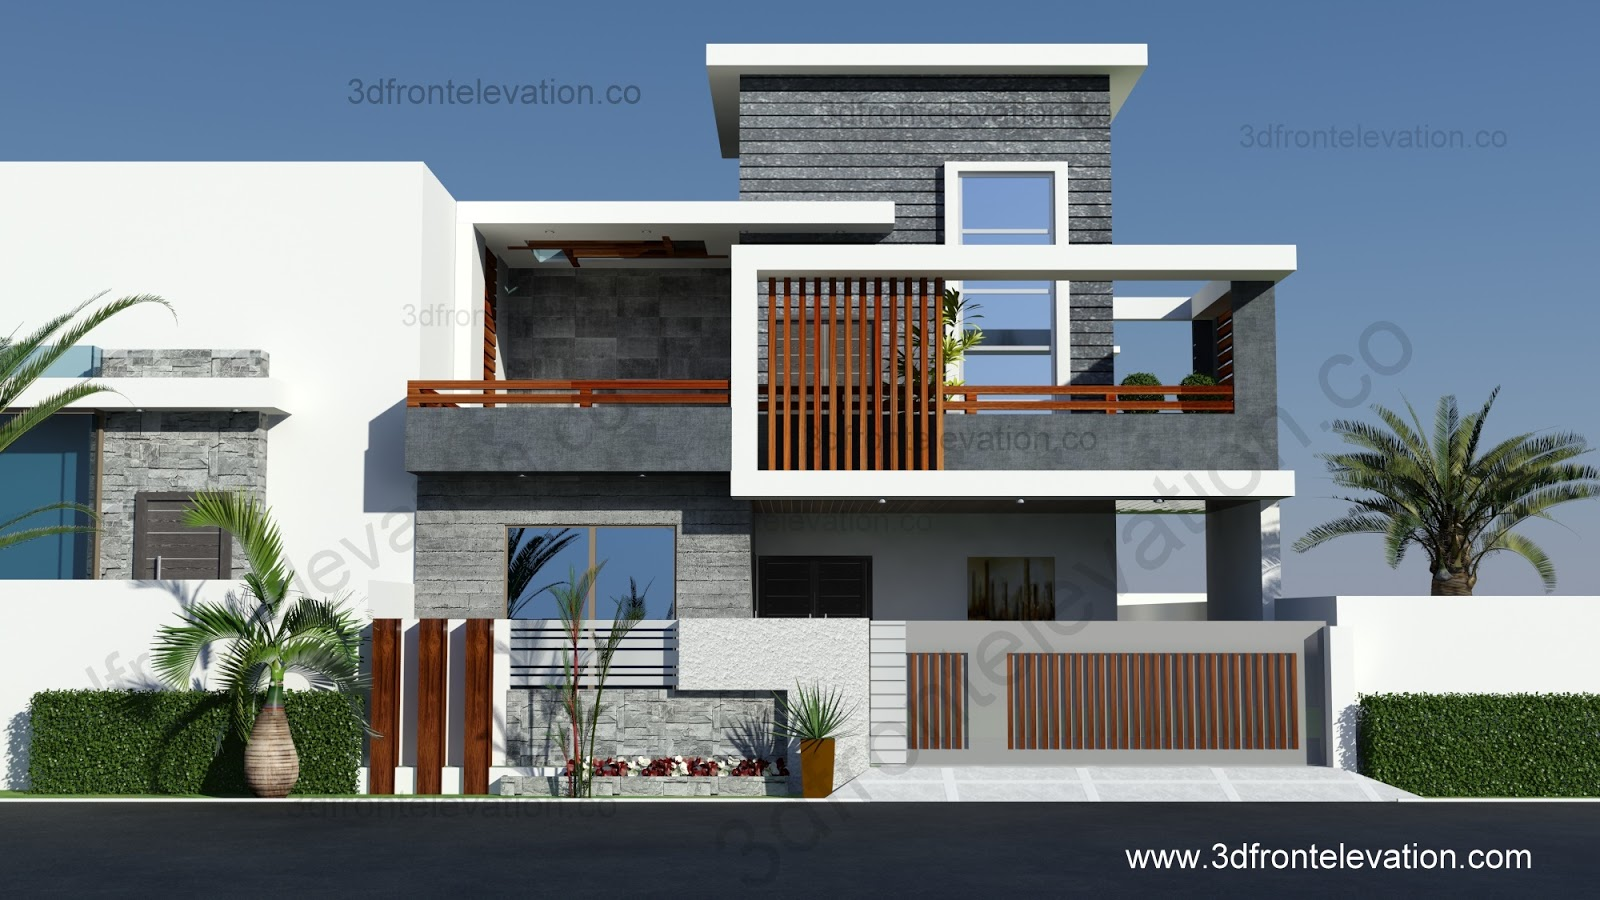 10 marla house plan for Best house design 2016